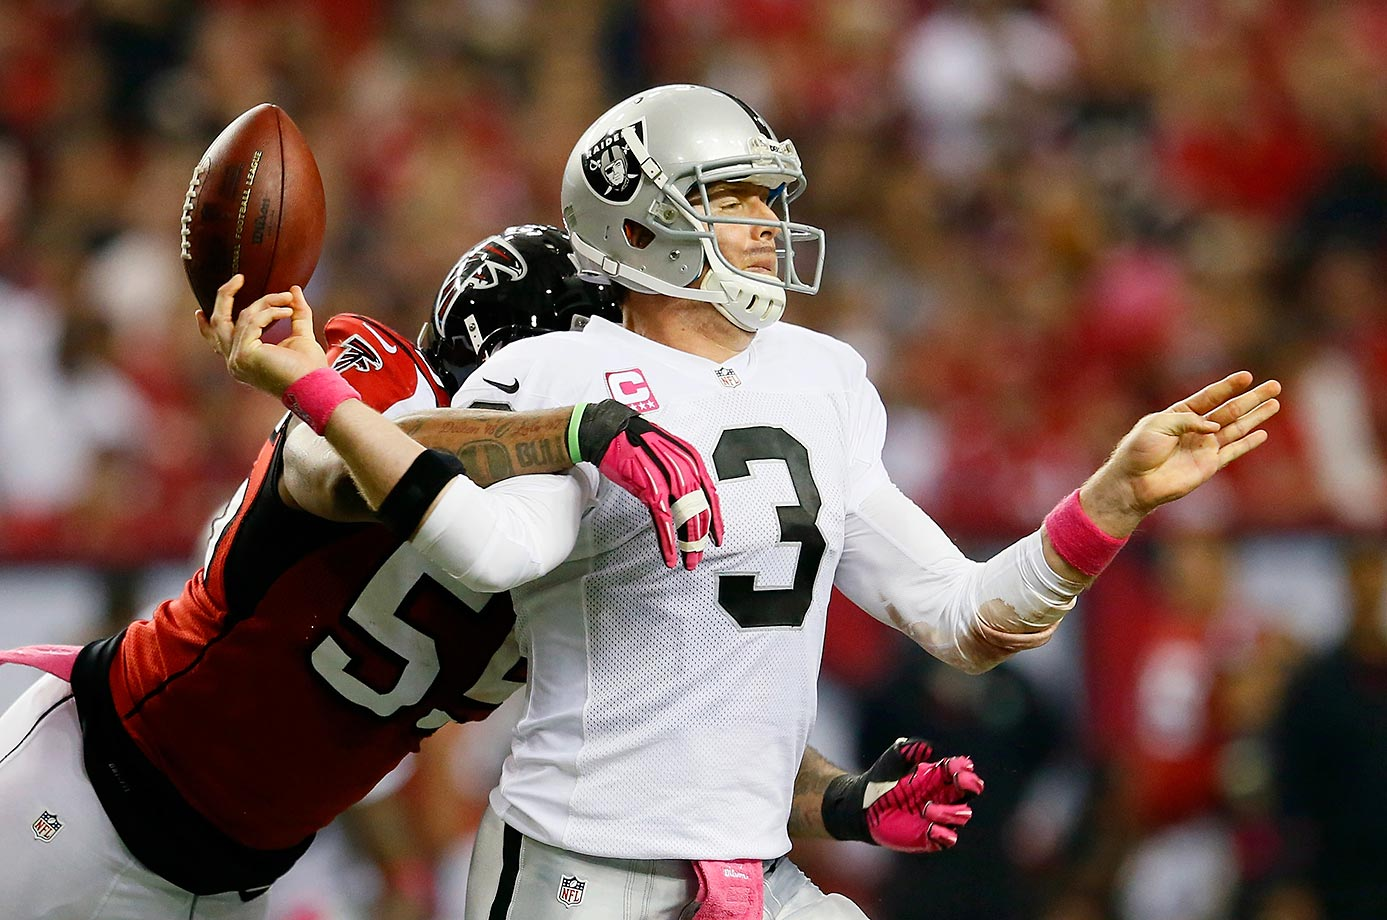 The Raiders went 4-11 with Palmer at quarterback in 2012.